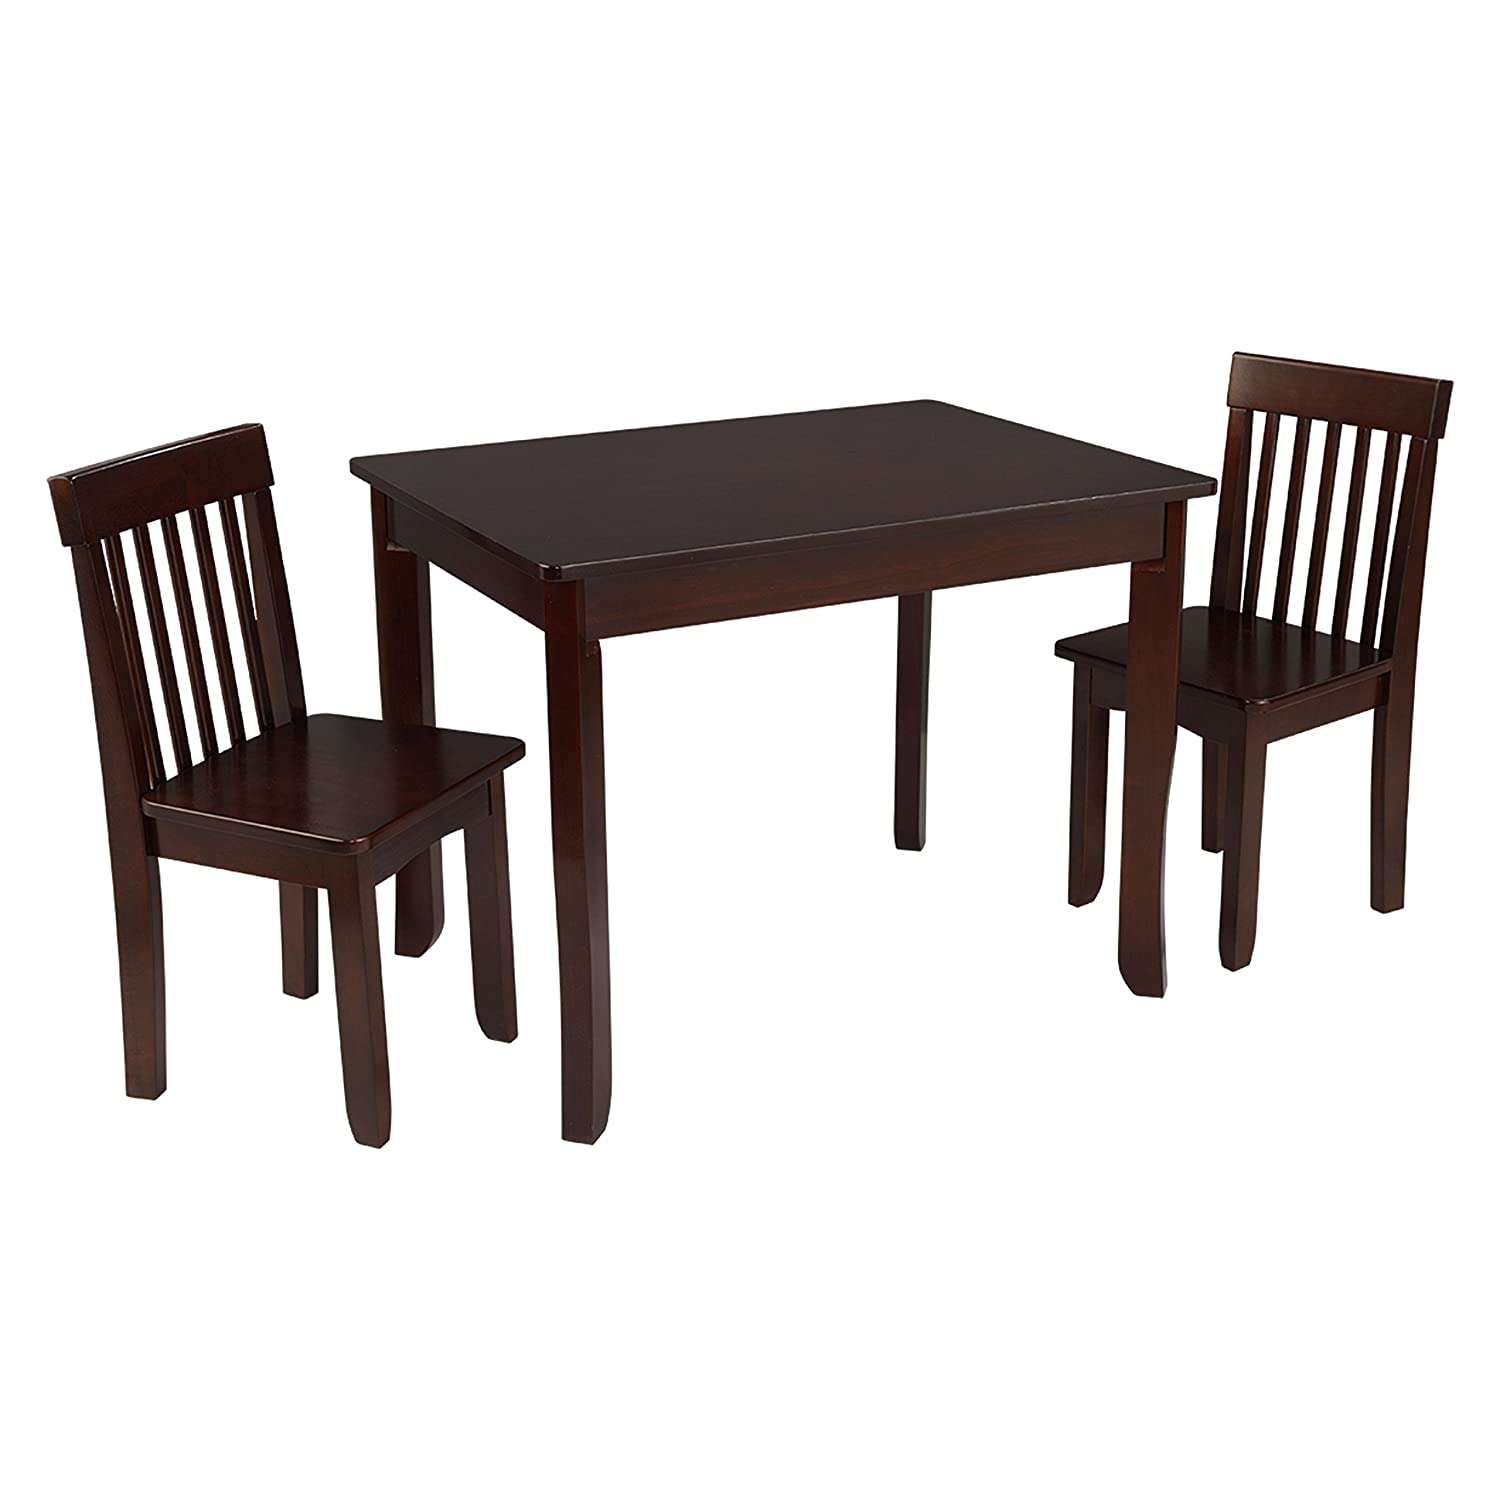 Amazon KidKraft Avalon Table II & 2 Chairs Set Espresso